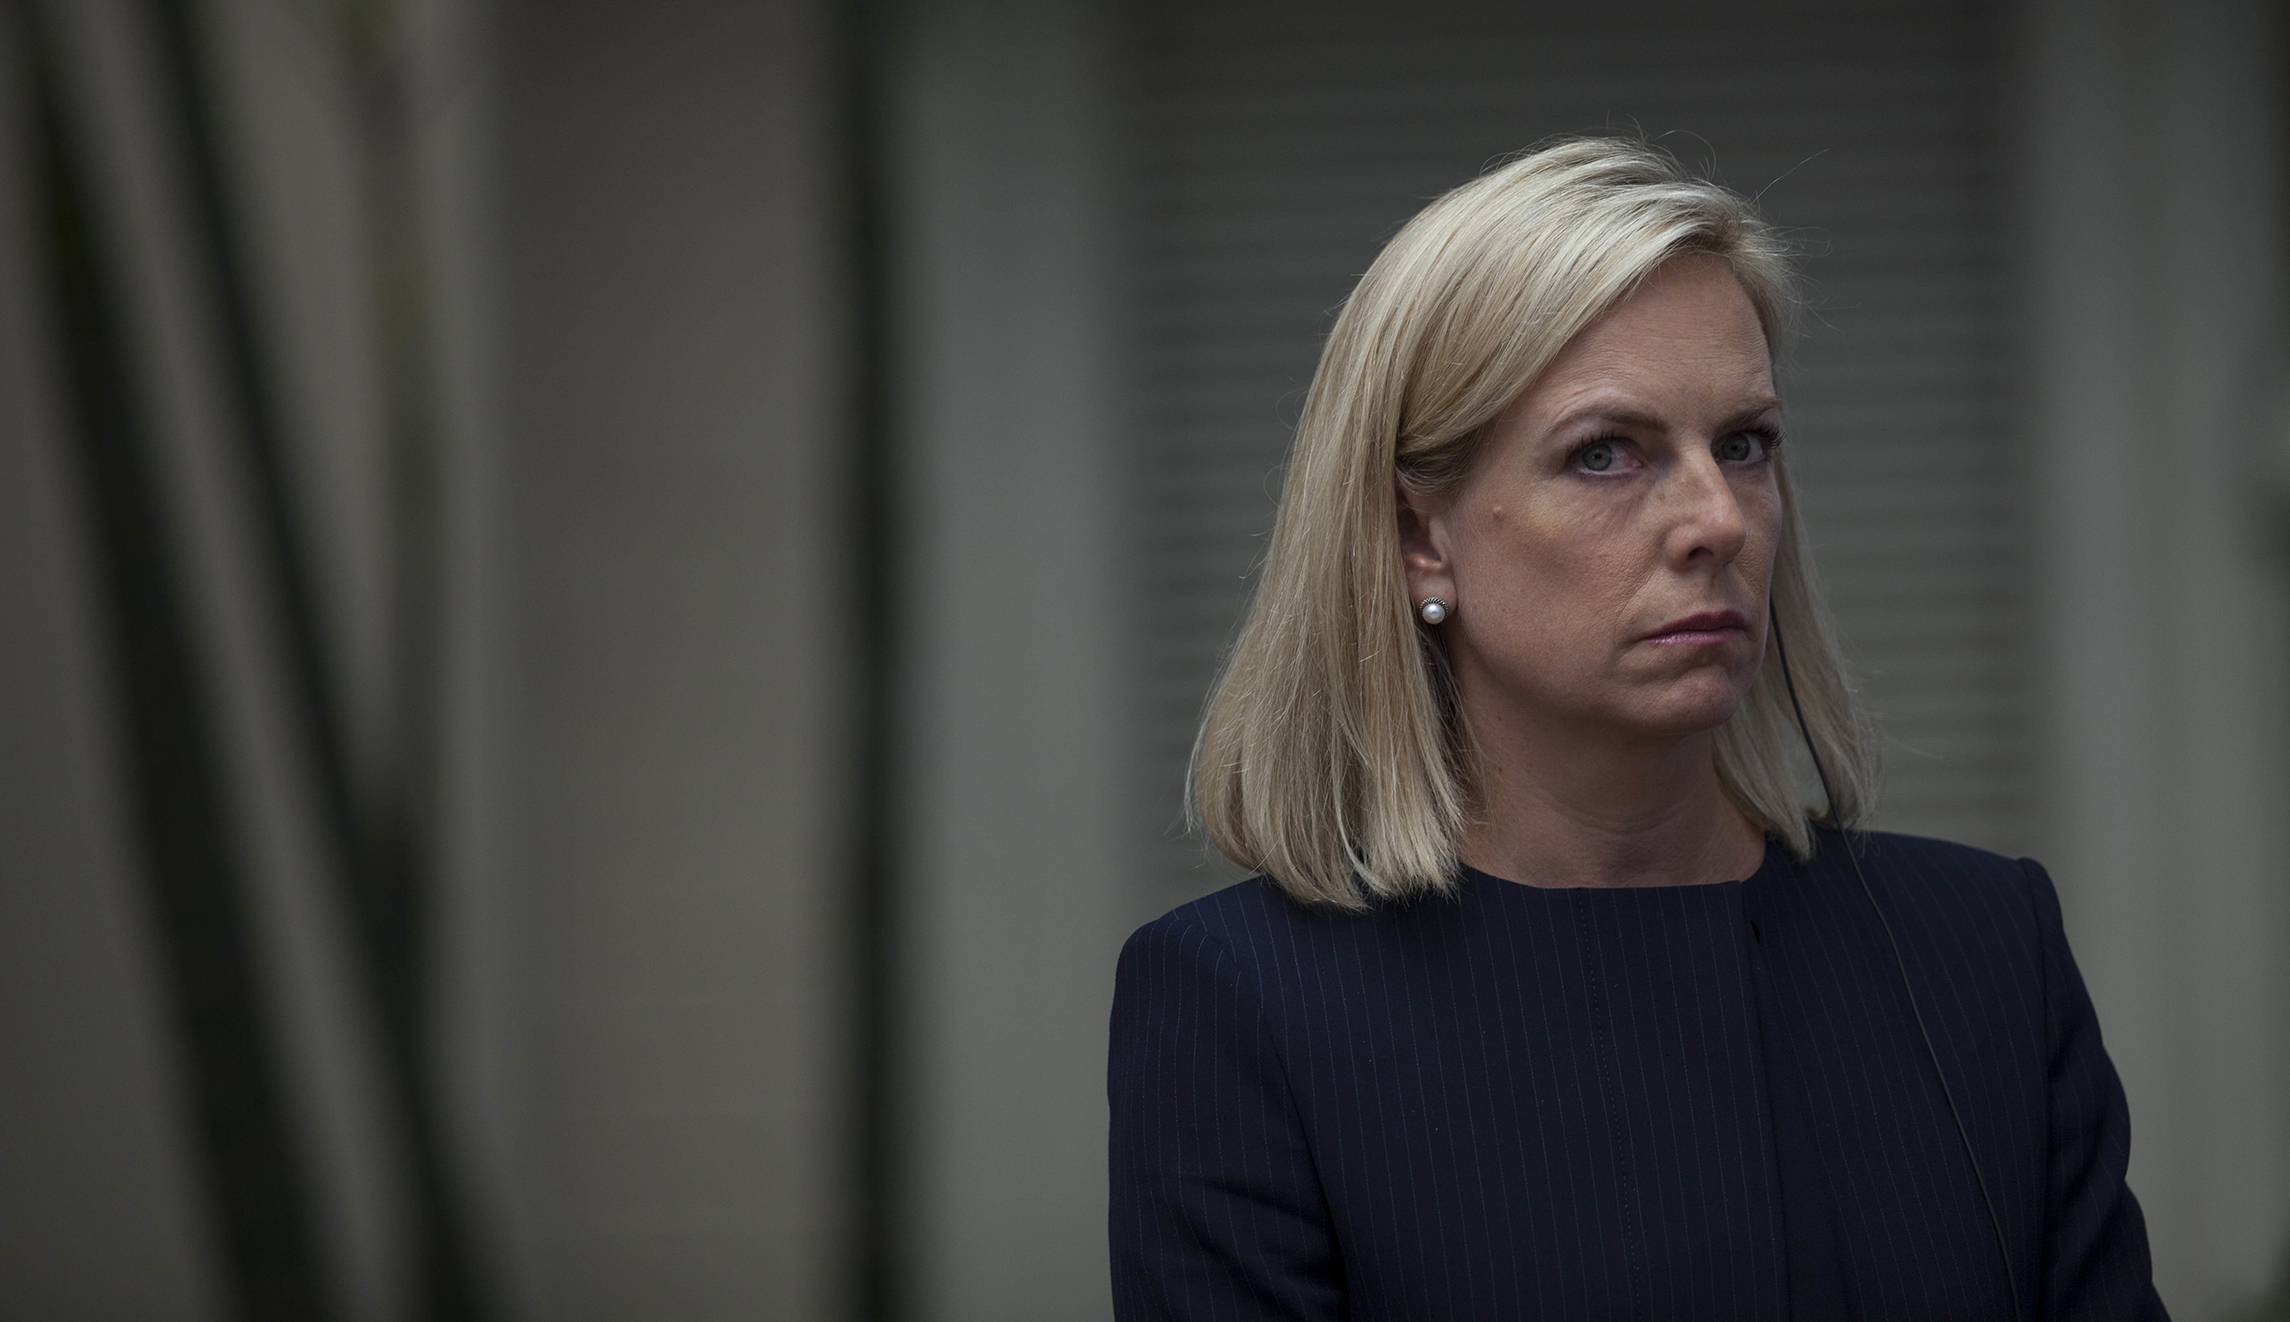 washingtonexaminer.com - Four members of Trump's Homeland Security council step down to protest 'morally repugnant' family separation